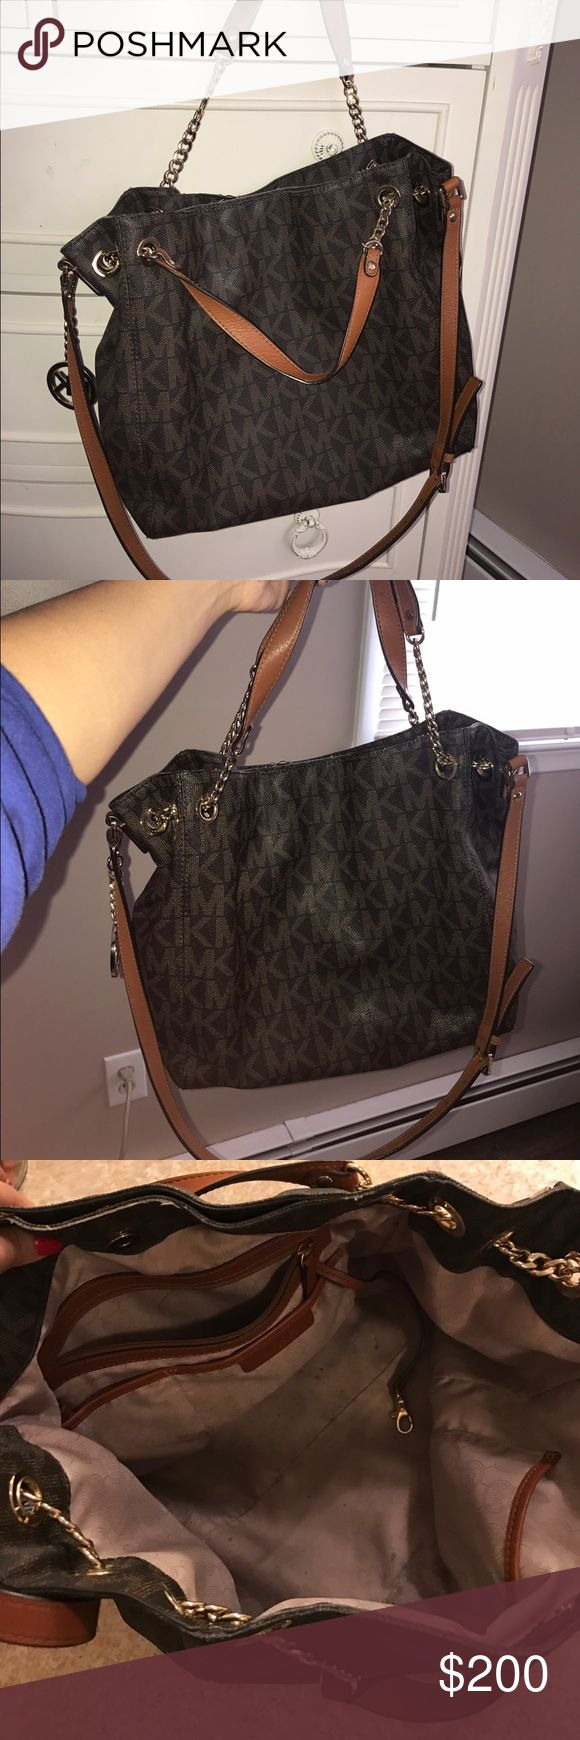 MK bag Brown MK bag. Outside in perfect condition. Inside has a few stains, mostly pen ink stains (used this bag at school) Michael Kors Bags Shoulder Bags